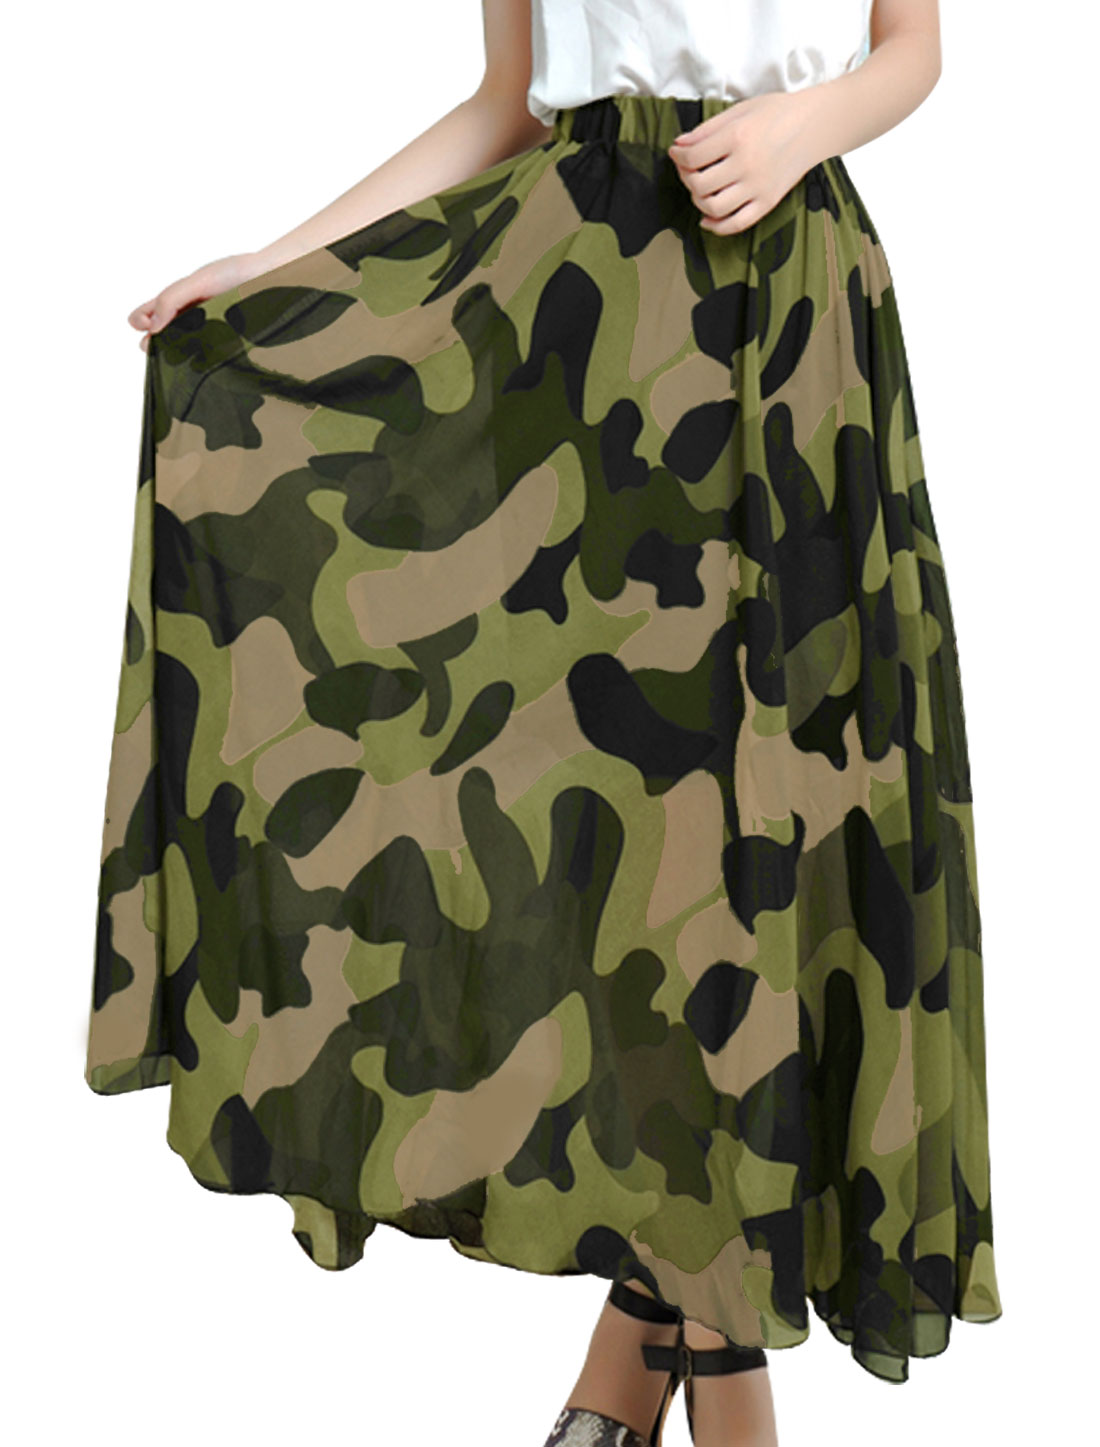 Lady Elastic Waist Camouflage Prints Lining Maxi Skirt Olive Green S